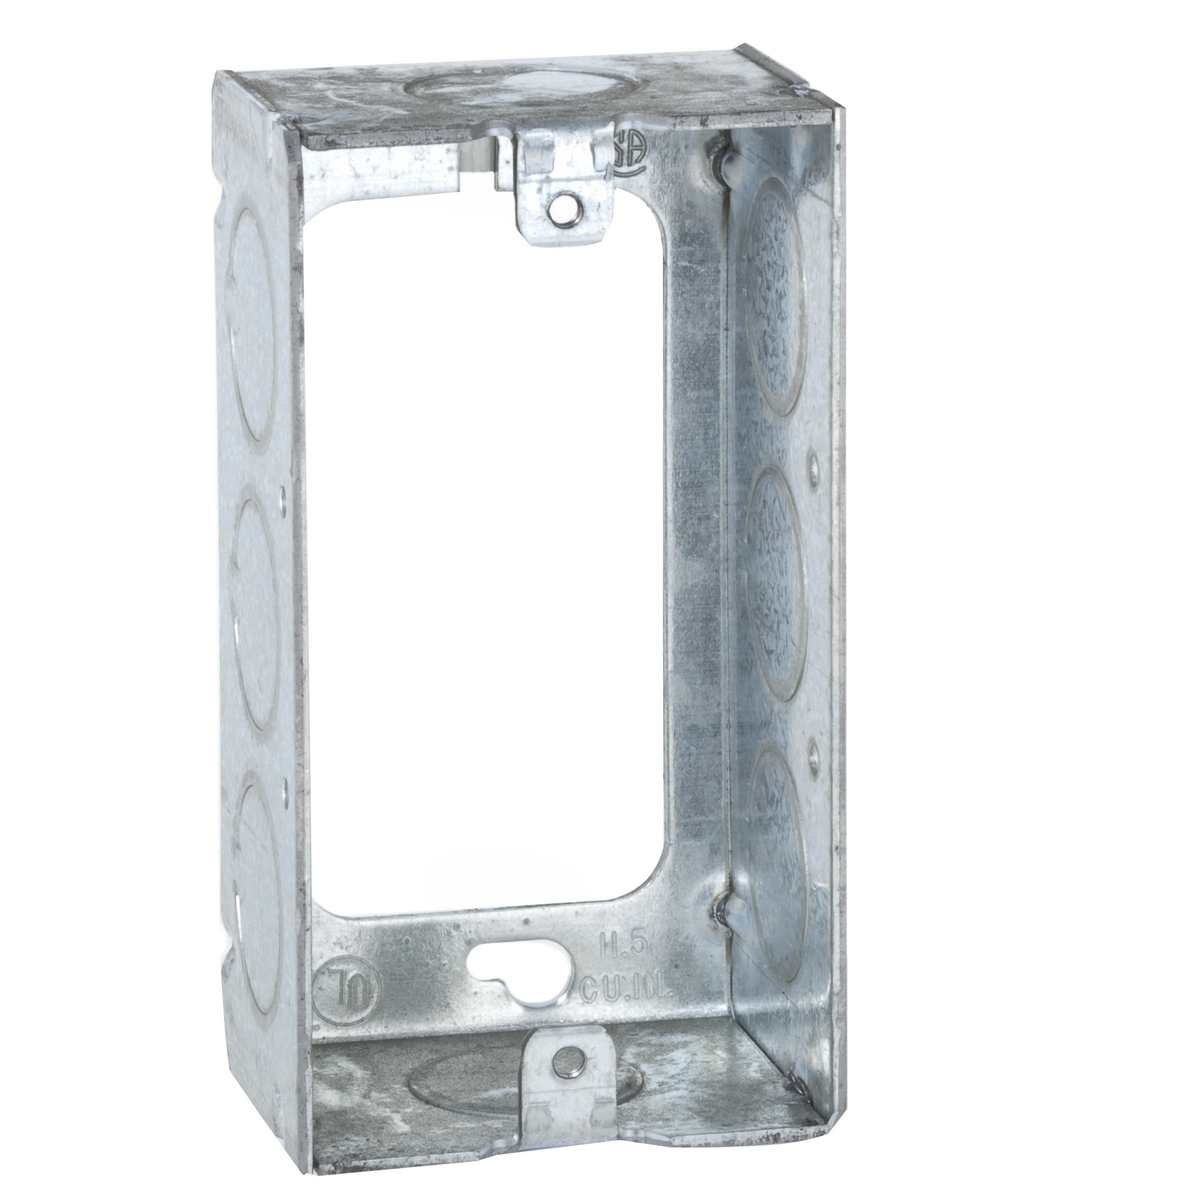 Hubbell-Raco 653 Handy Box Extension Ring